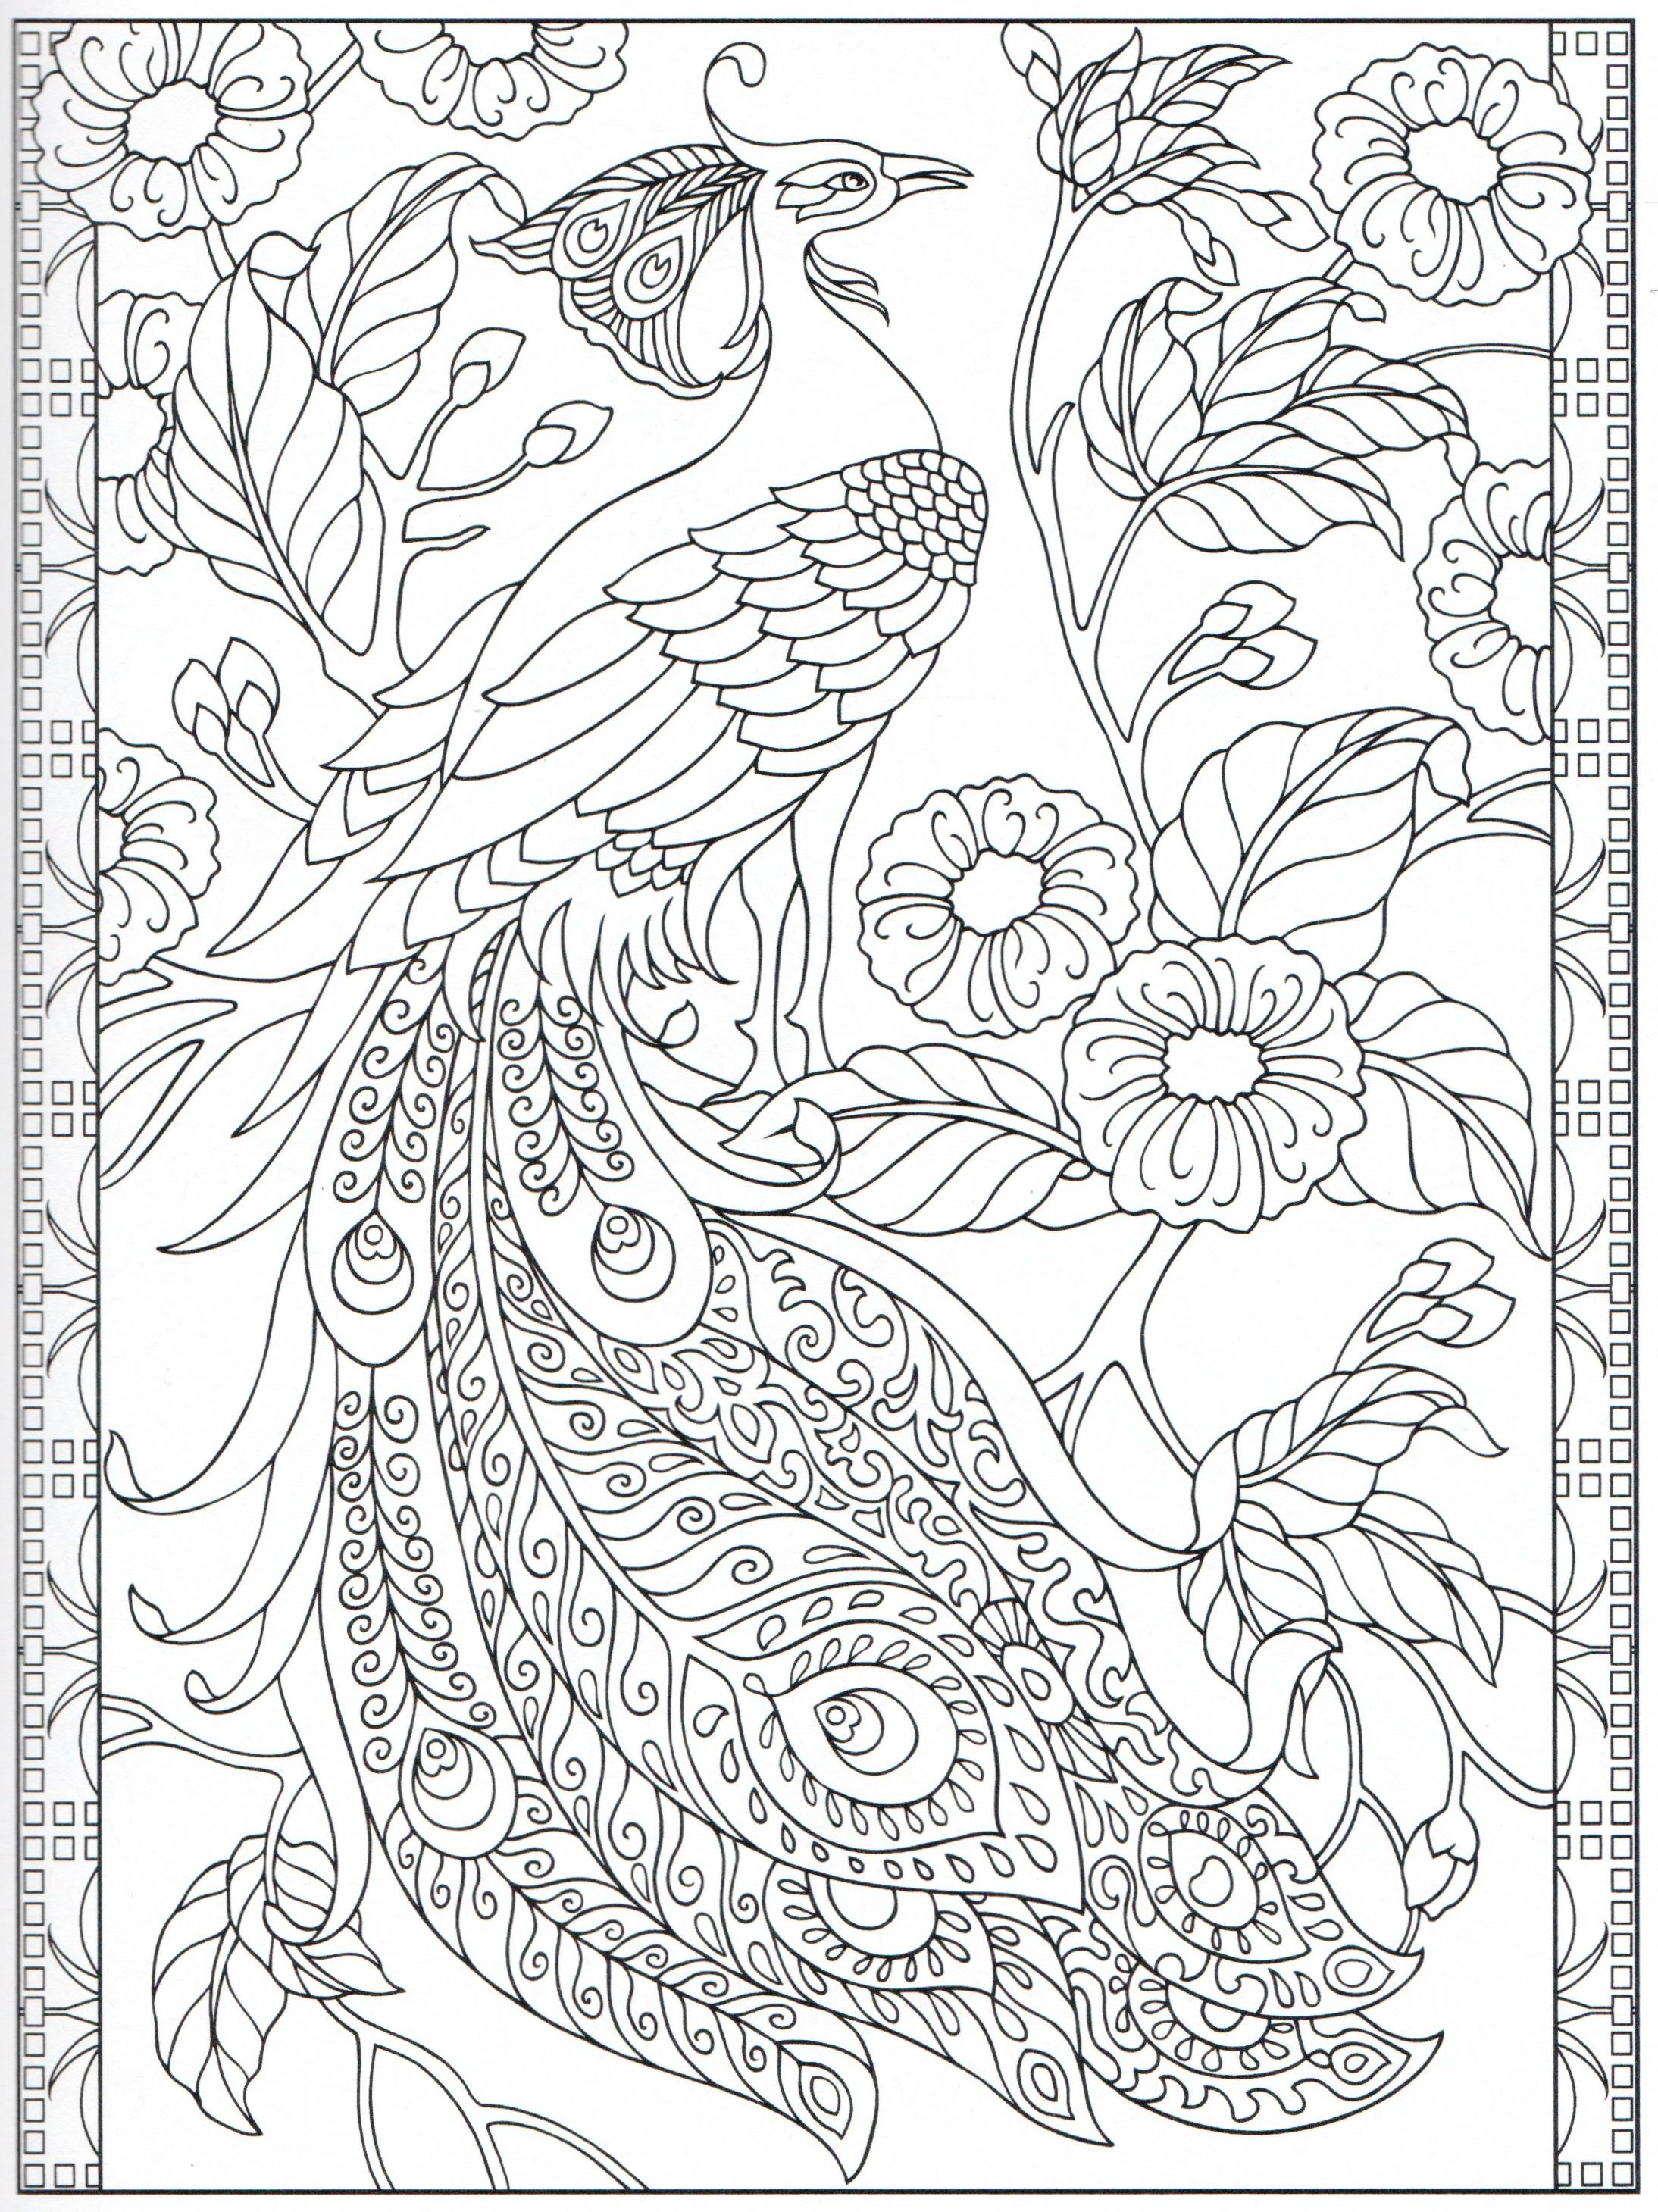 Peacock coloring page 24/31 | Color pages, Stencils, Templates ...